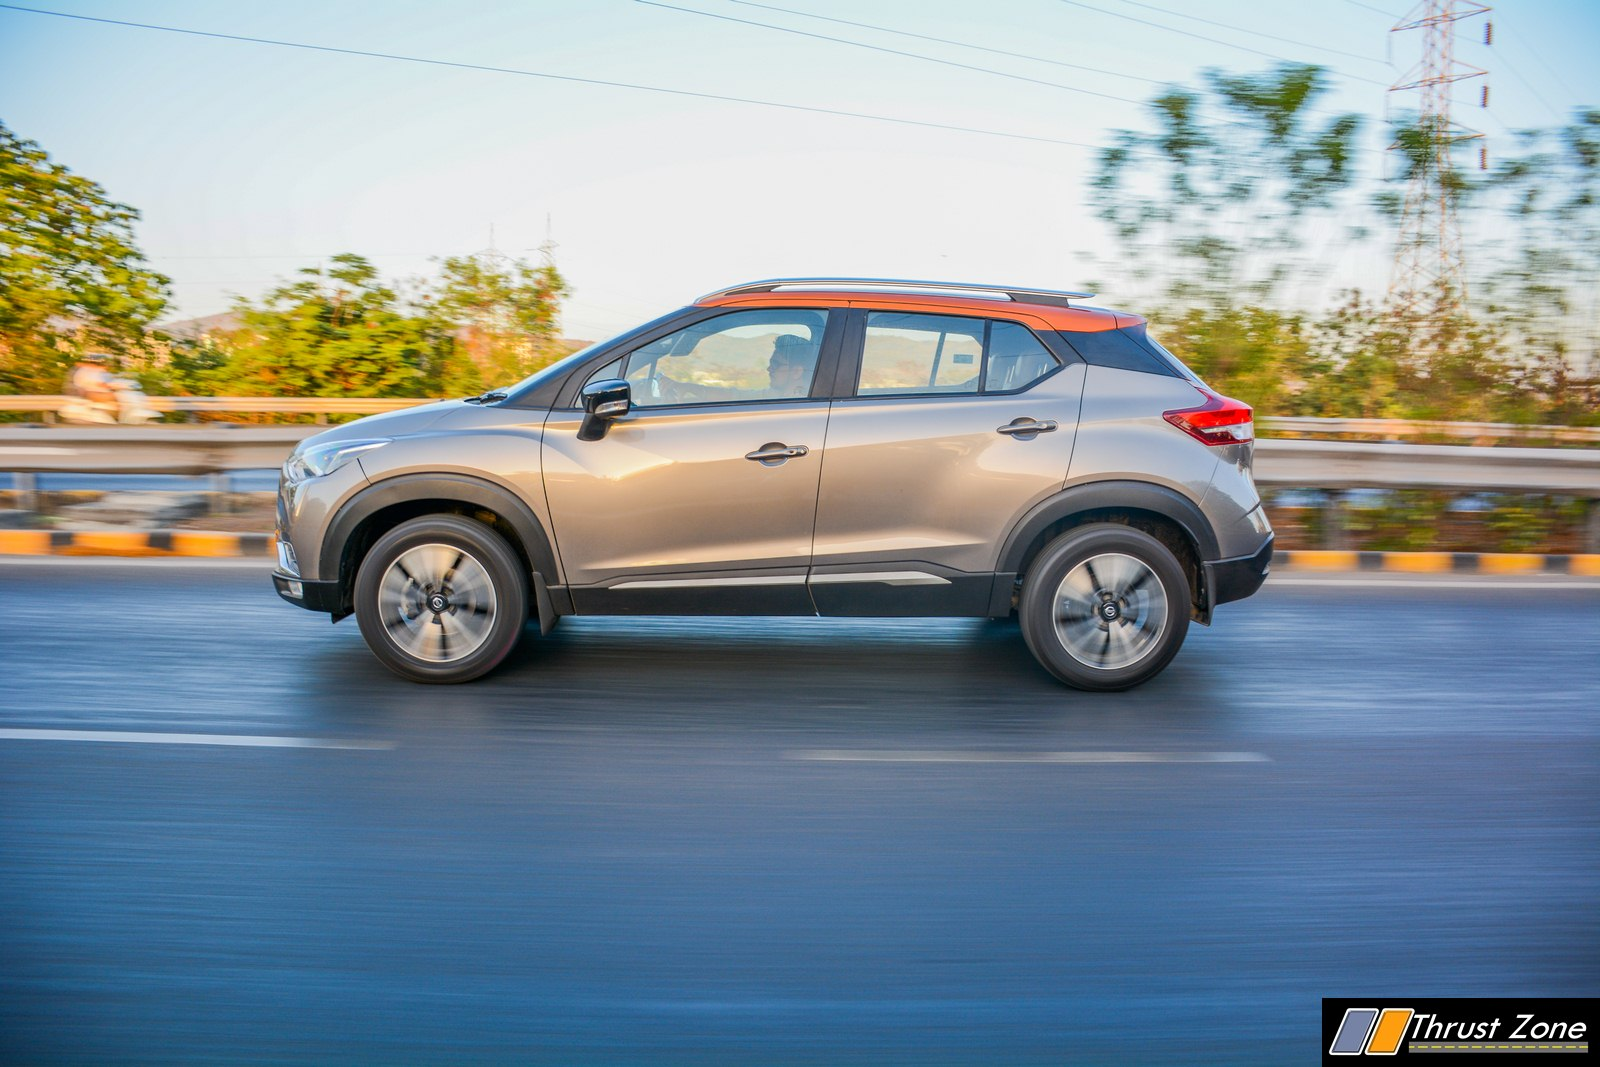 https://www.thrustzone.com/wp-content/uploads/2019/05/nissan-kicks-india-diesel-review-18.jpg